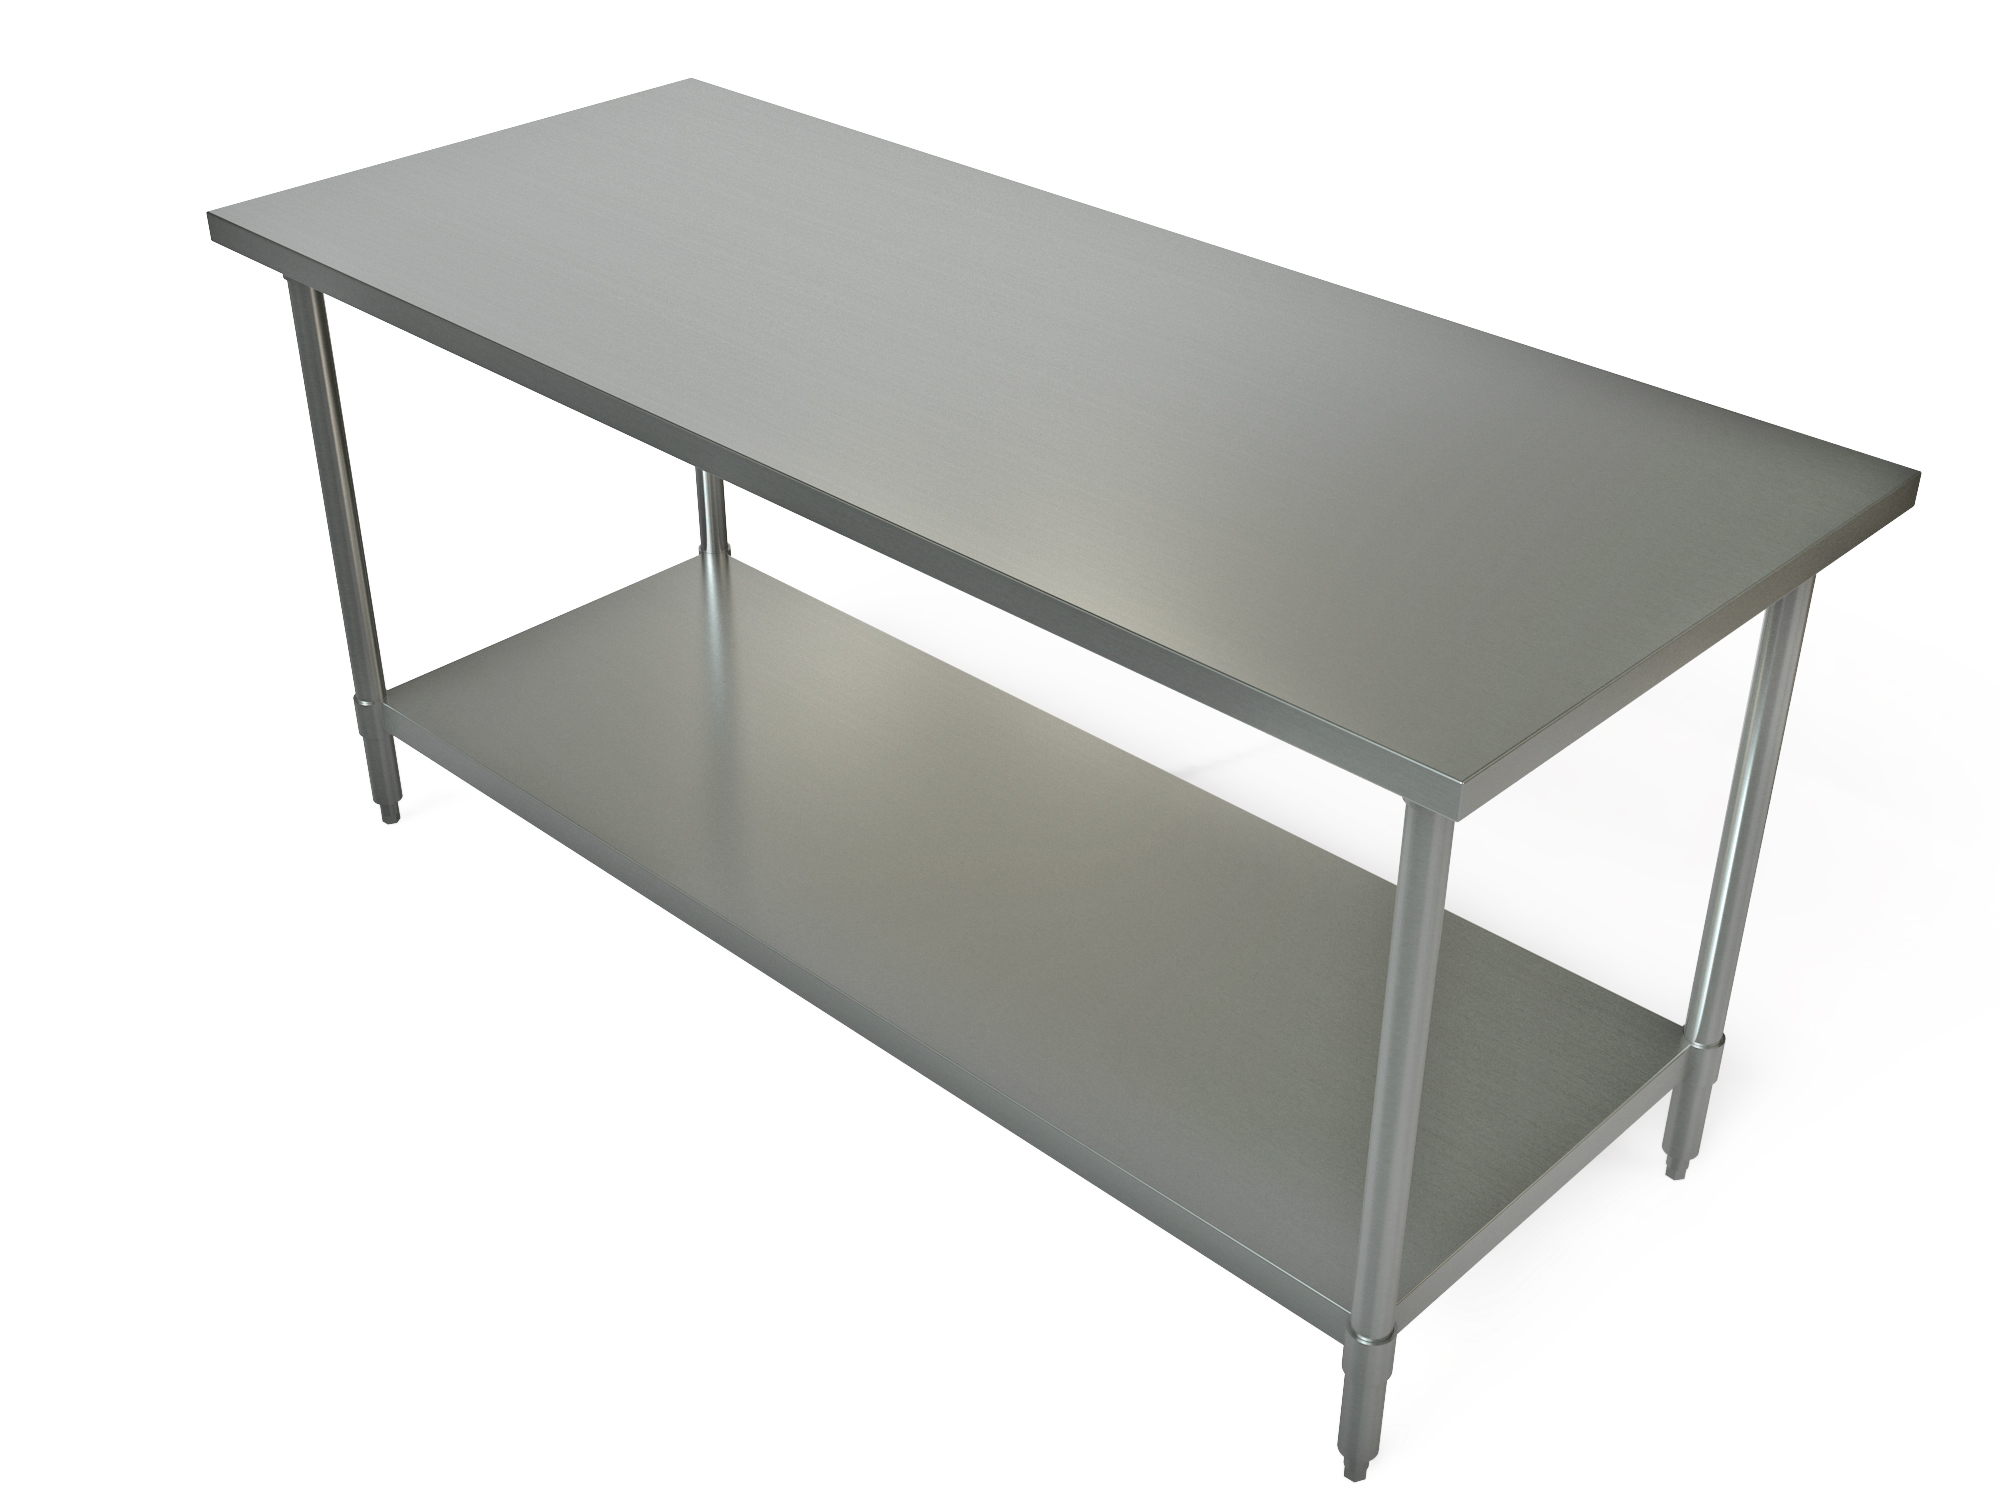 TBR Tarrison - 36 x 48 stainless steel table